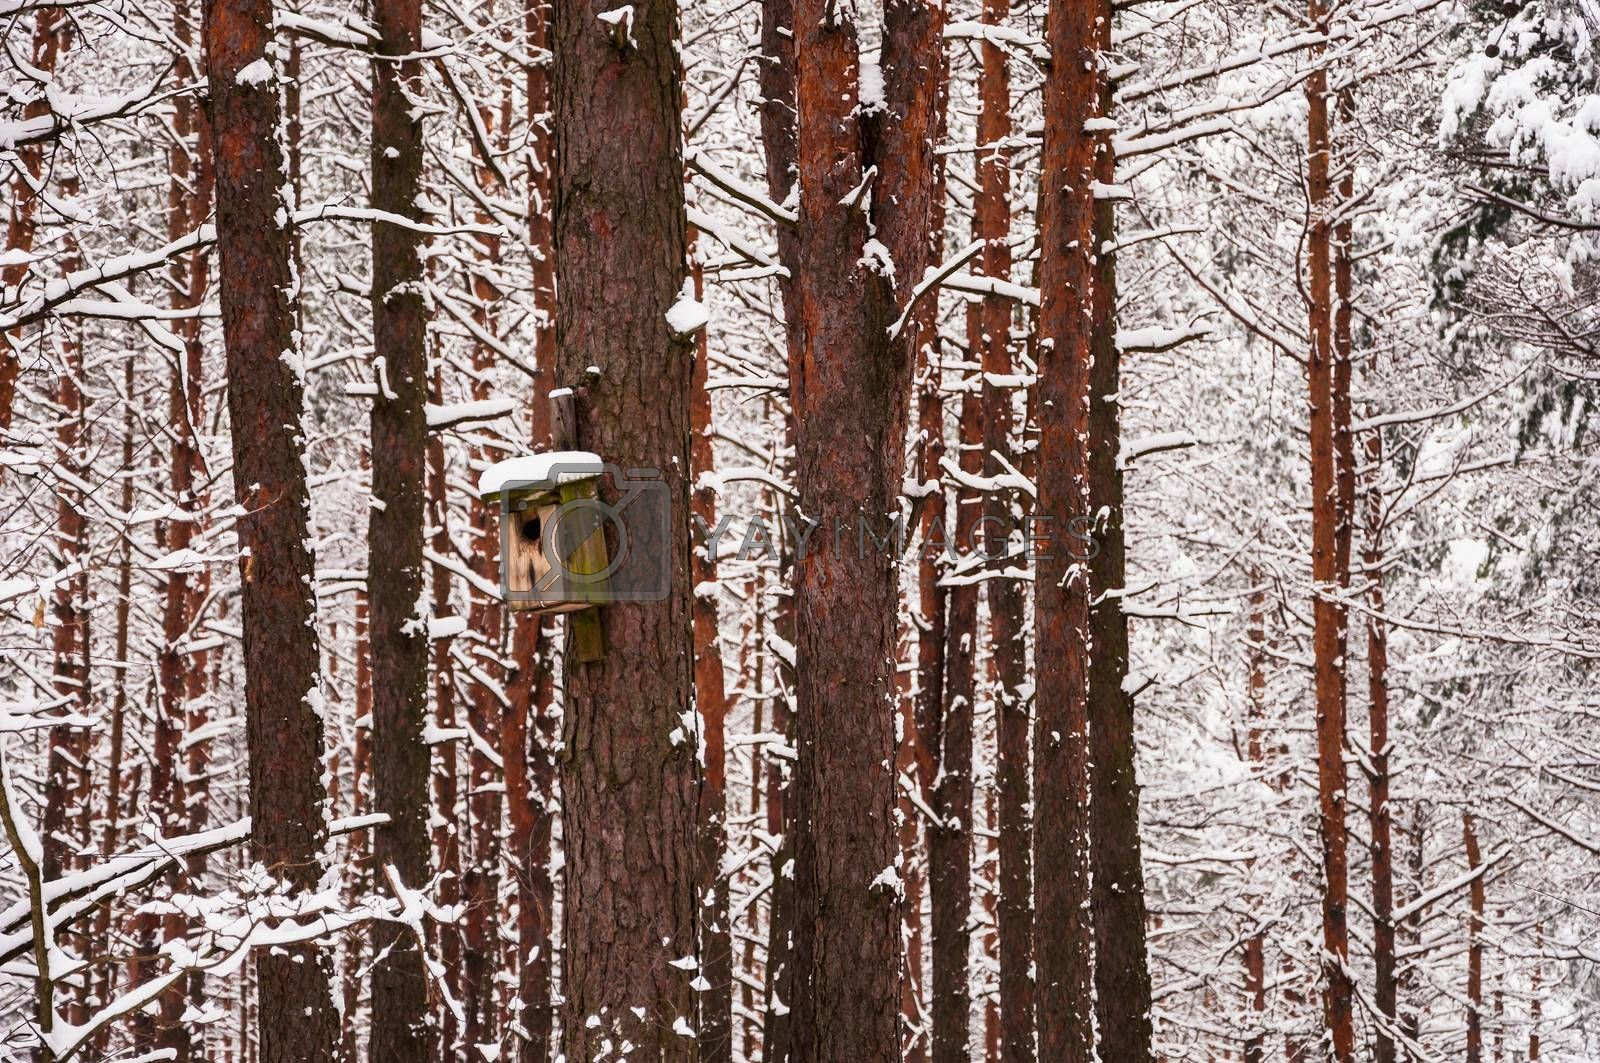 Feeder on the tree in winter.